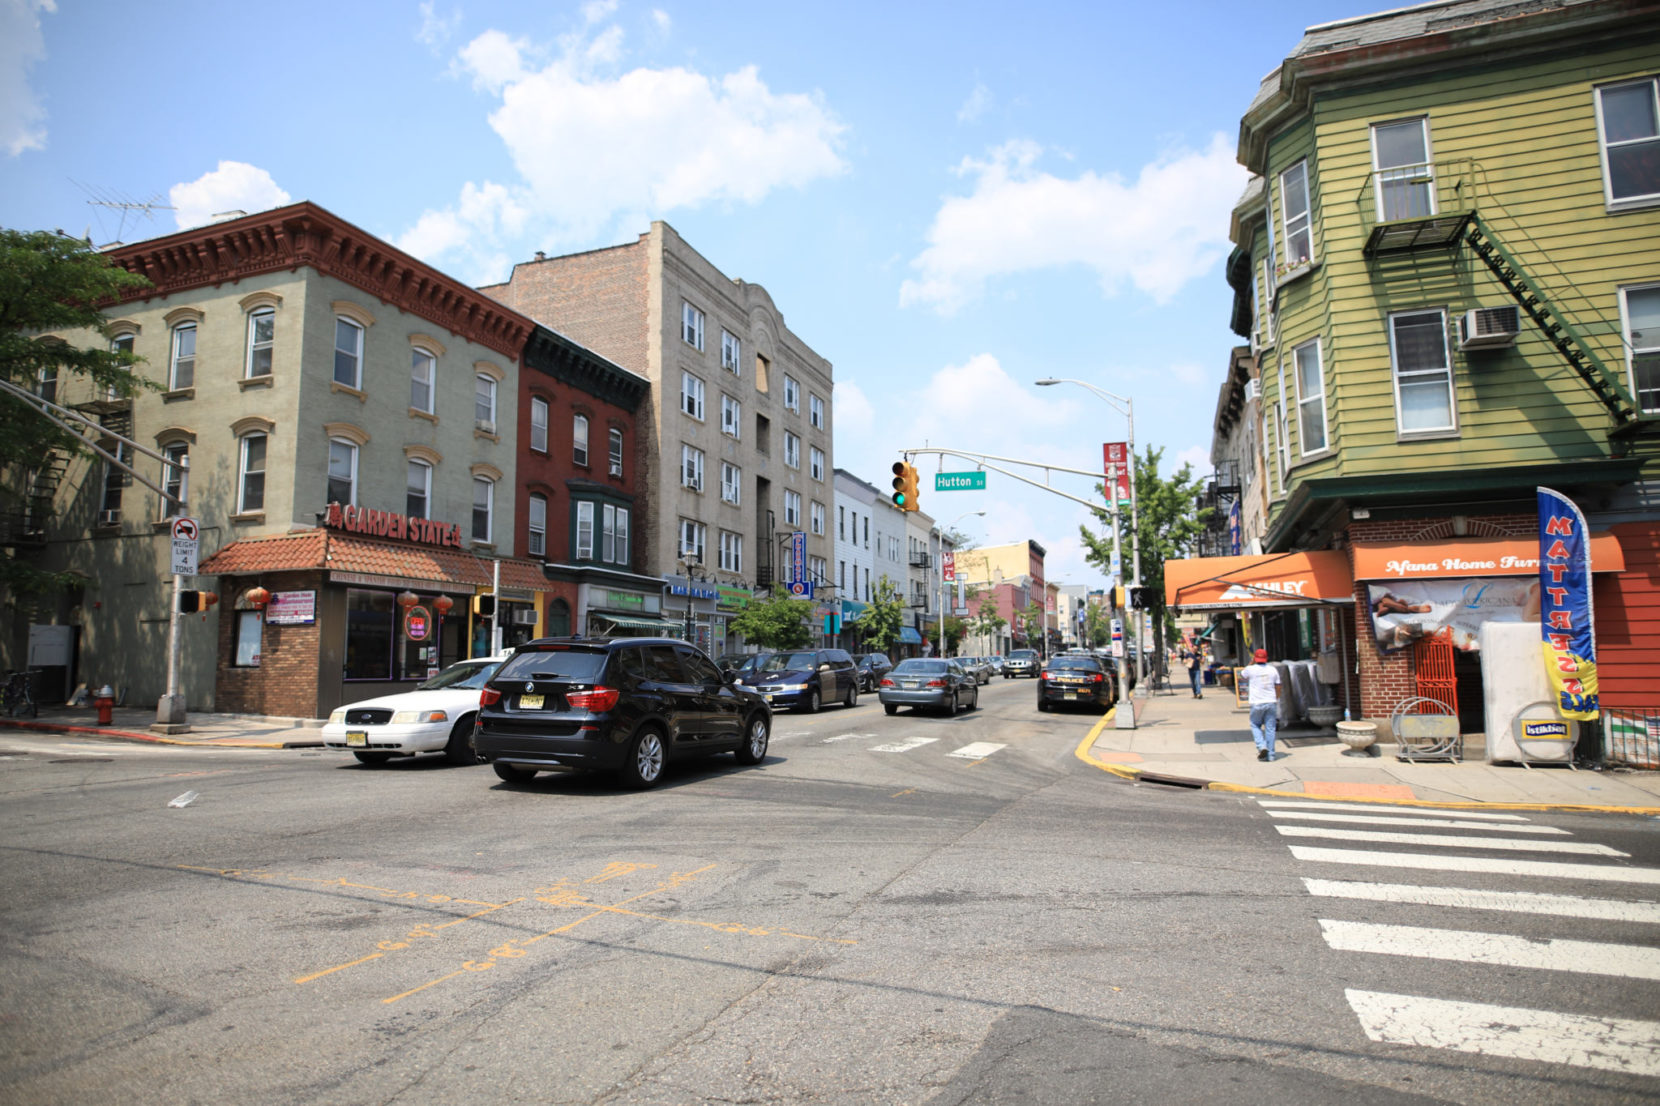 10 food spots to support in the Heights